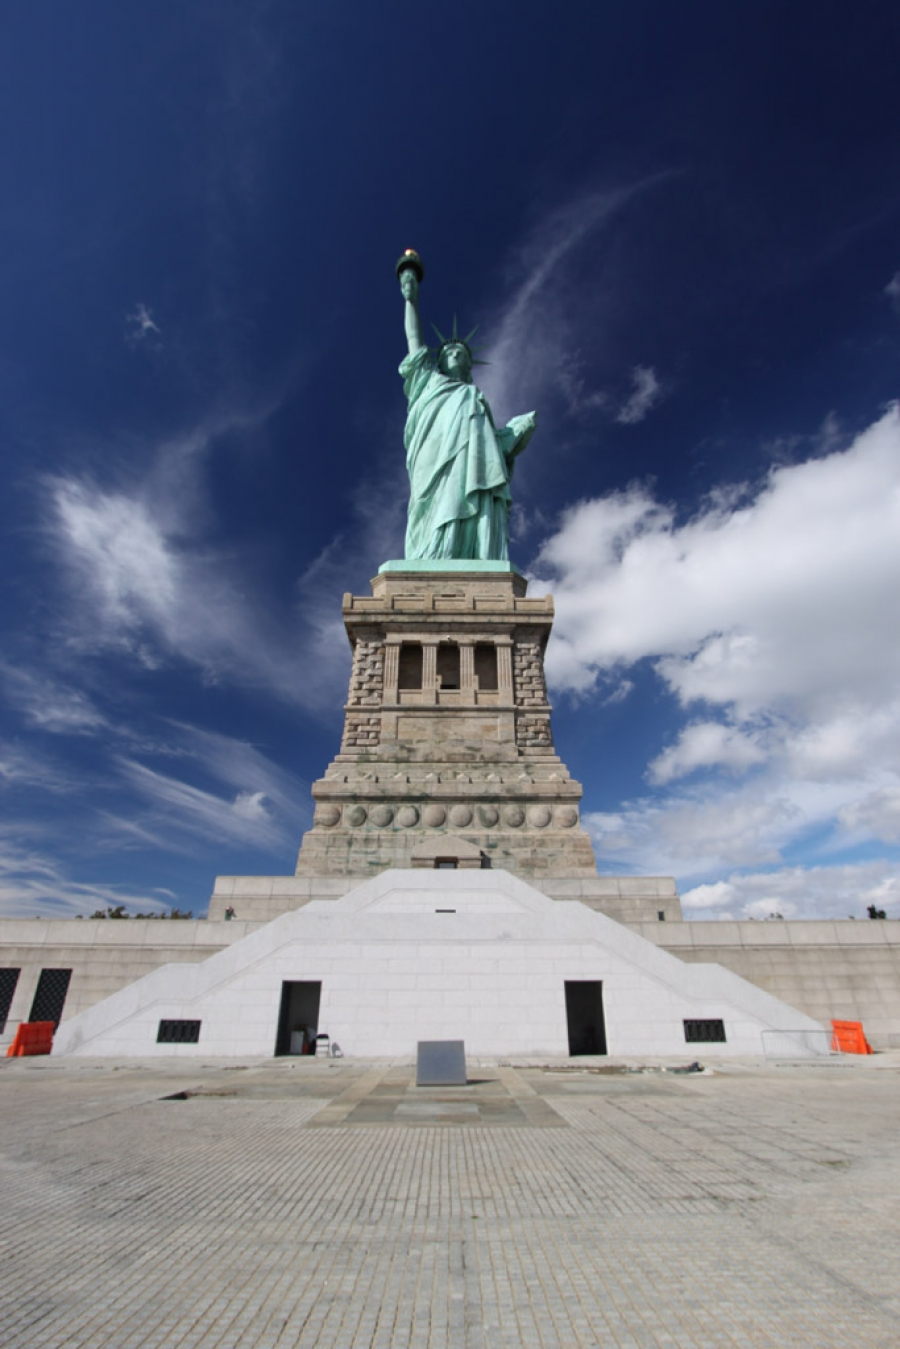 Give Me Your Renovated: Enhancements to the Statue of Liberty